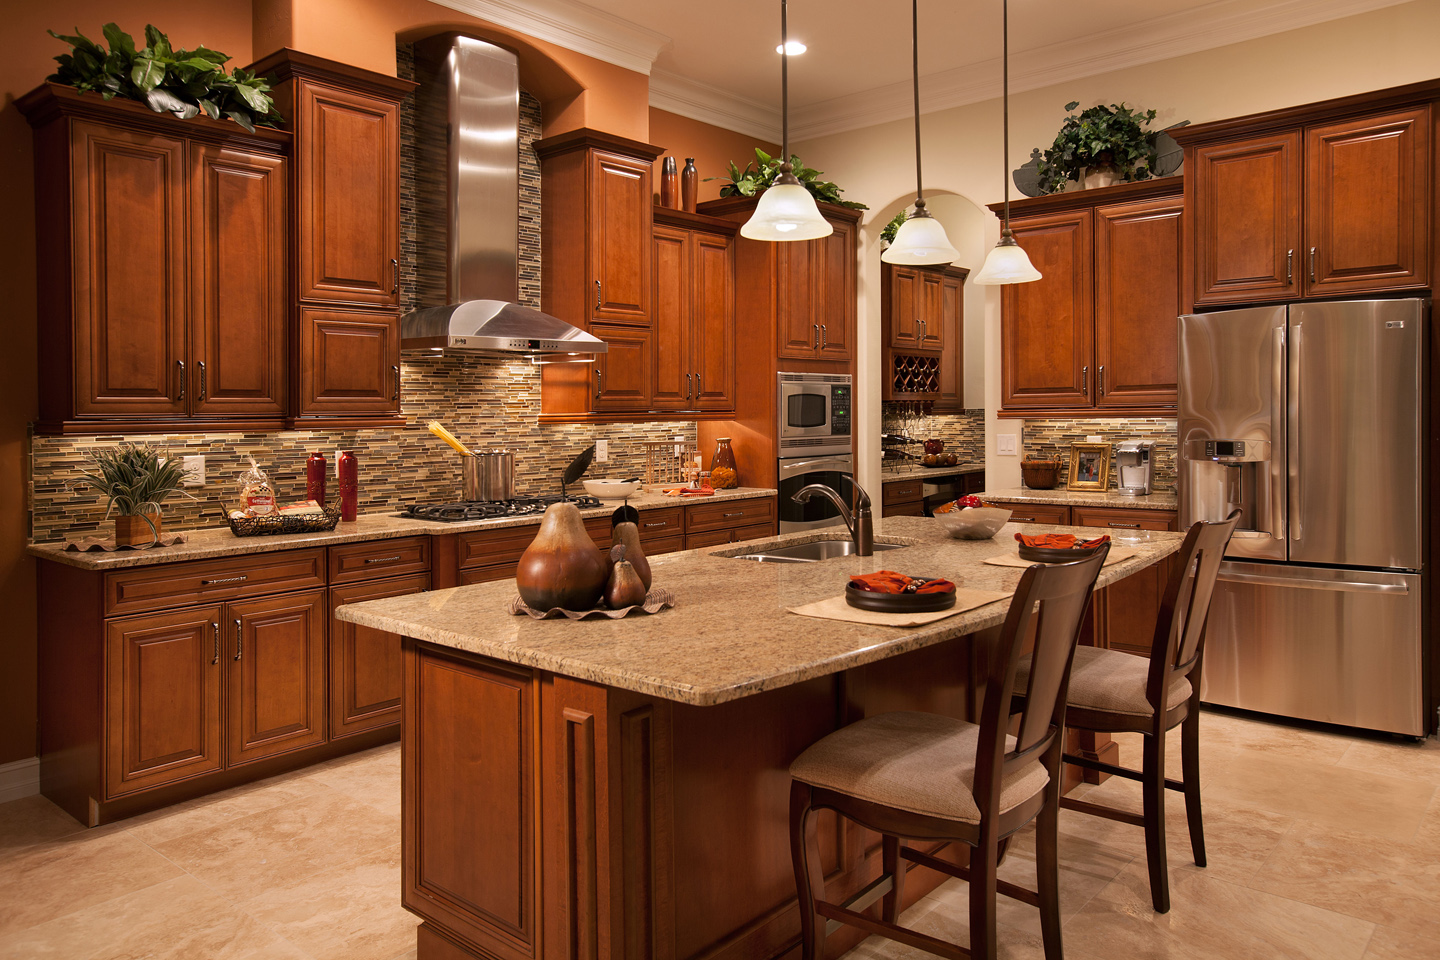 Kitchen model designs the best inspiration for interiors for Homey kitchen designs